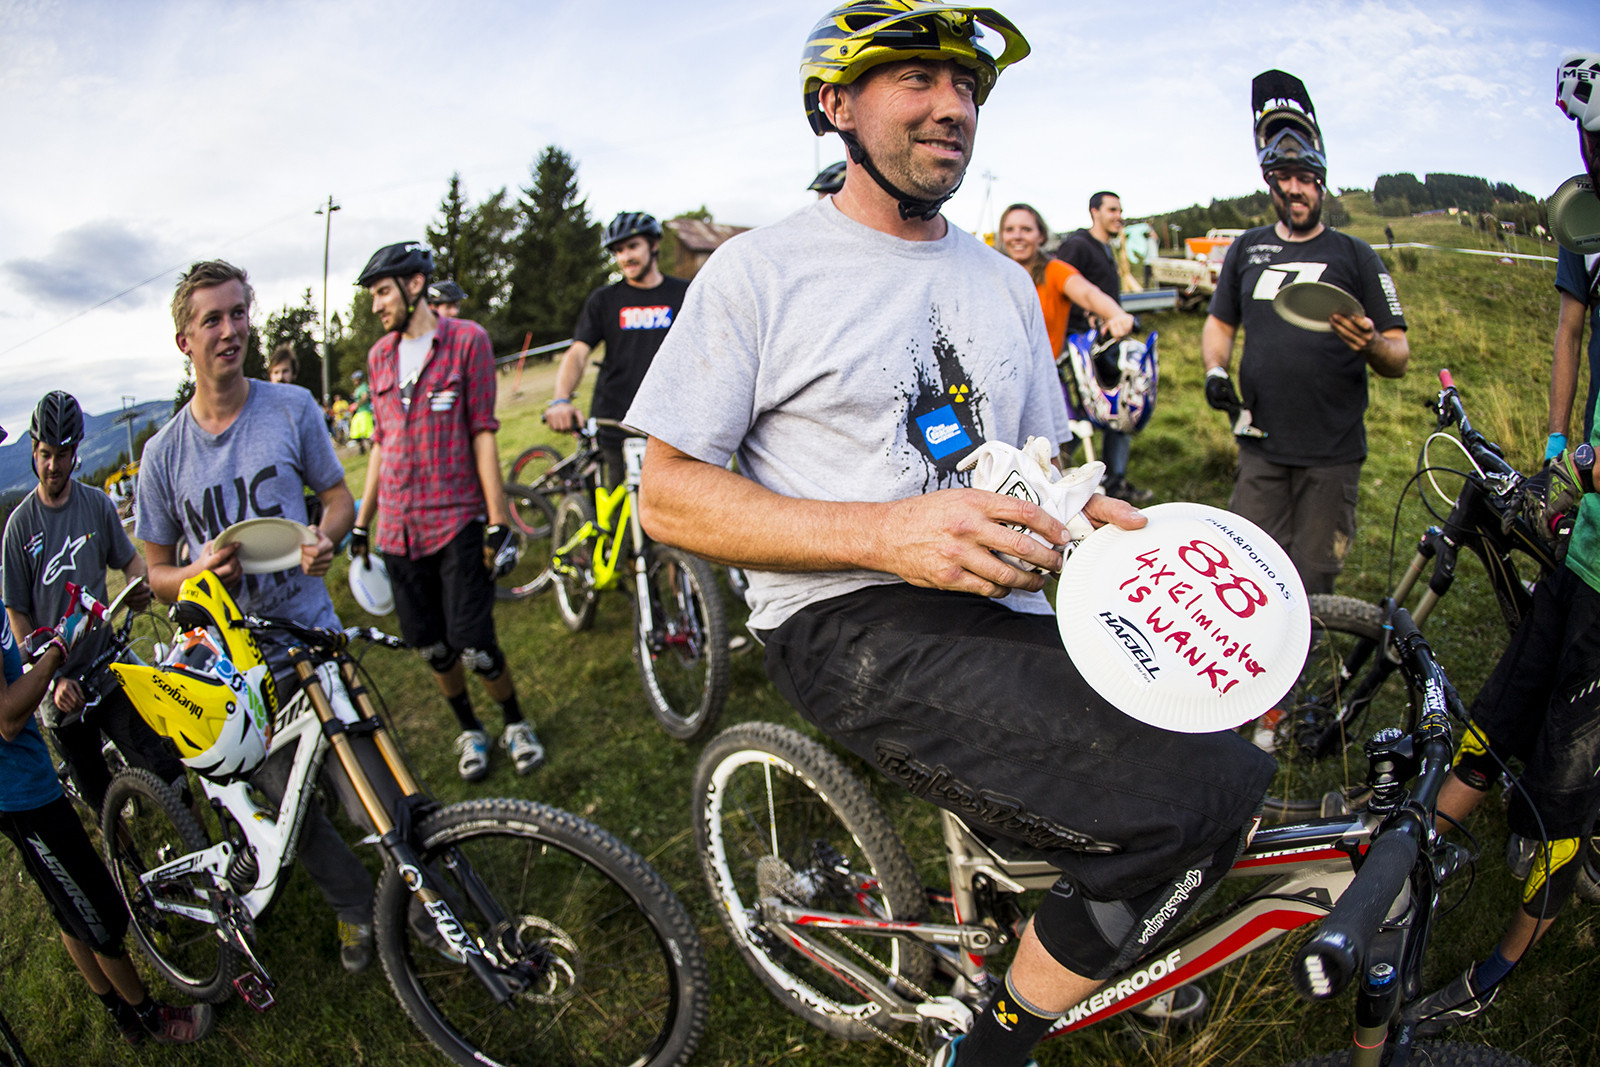 Nigel's True Feelings Come Out - Has-Beens vs. Wannabes! Industry World Champs Race at Hafjell - Mountain Biking Pictures - Vital MTB